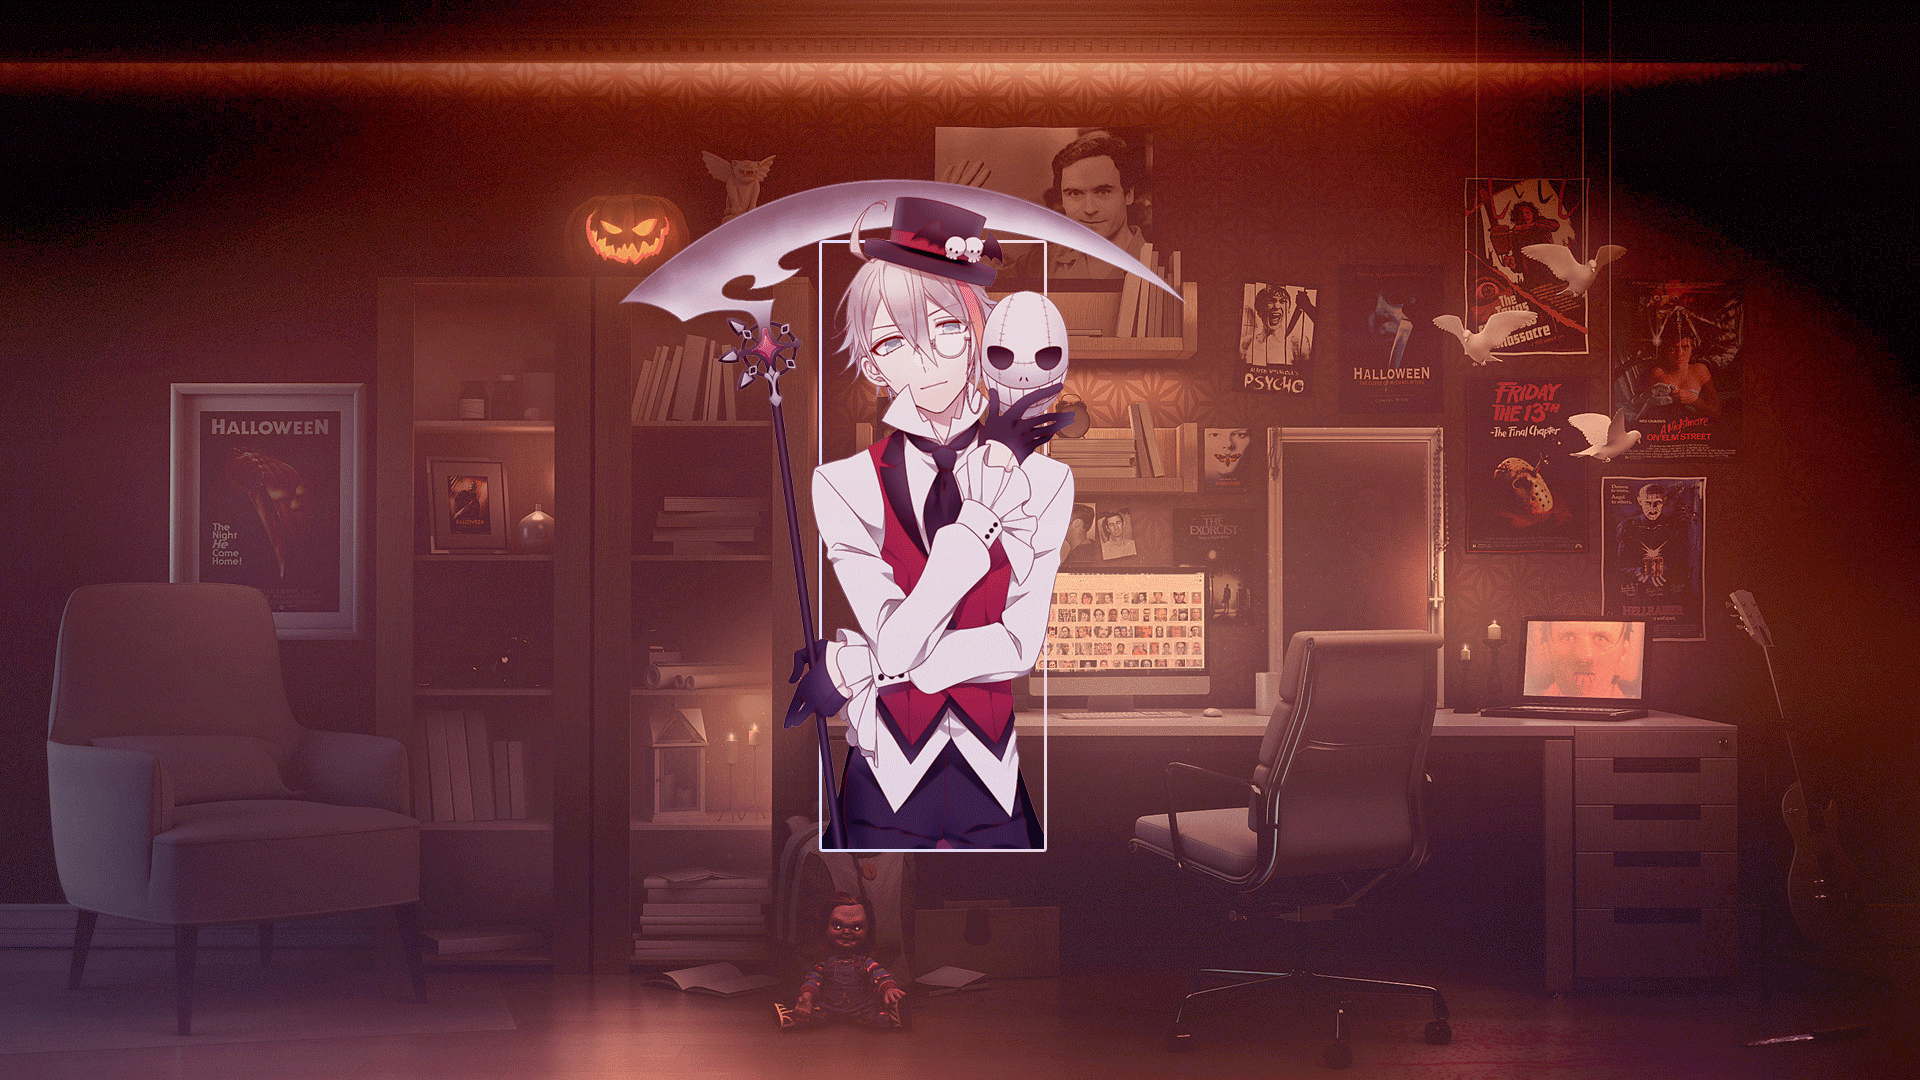 Anime 1920x1080 anime anime boys room Halloween pumpkin digital art Photoshop picture-in-picture scythe